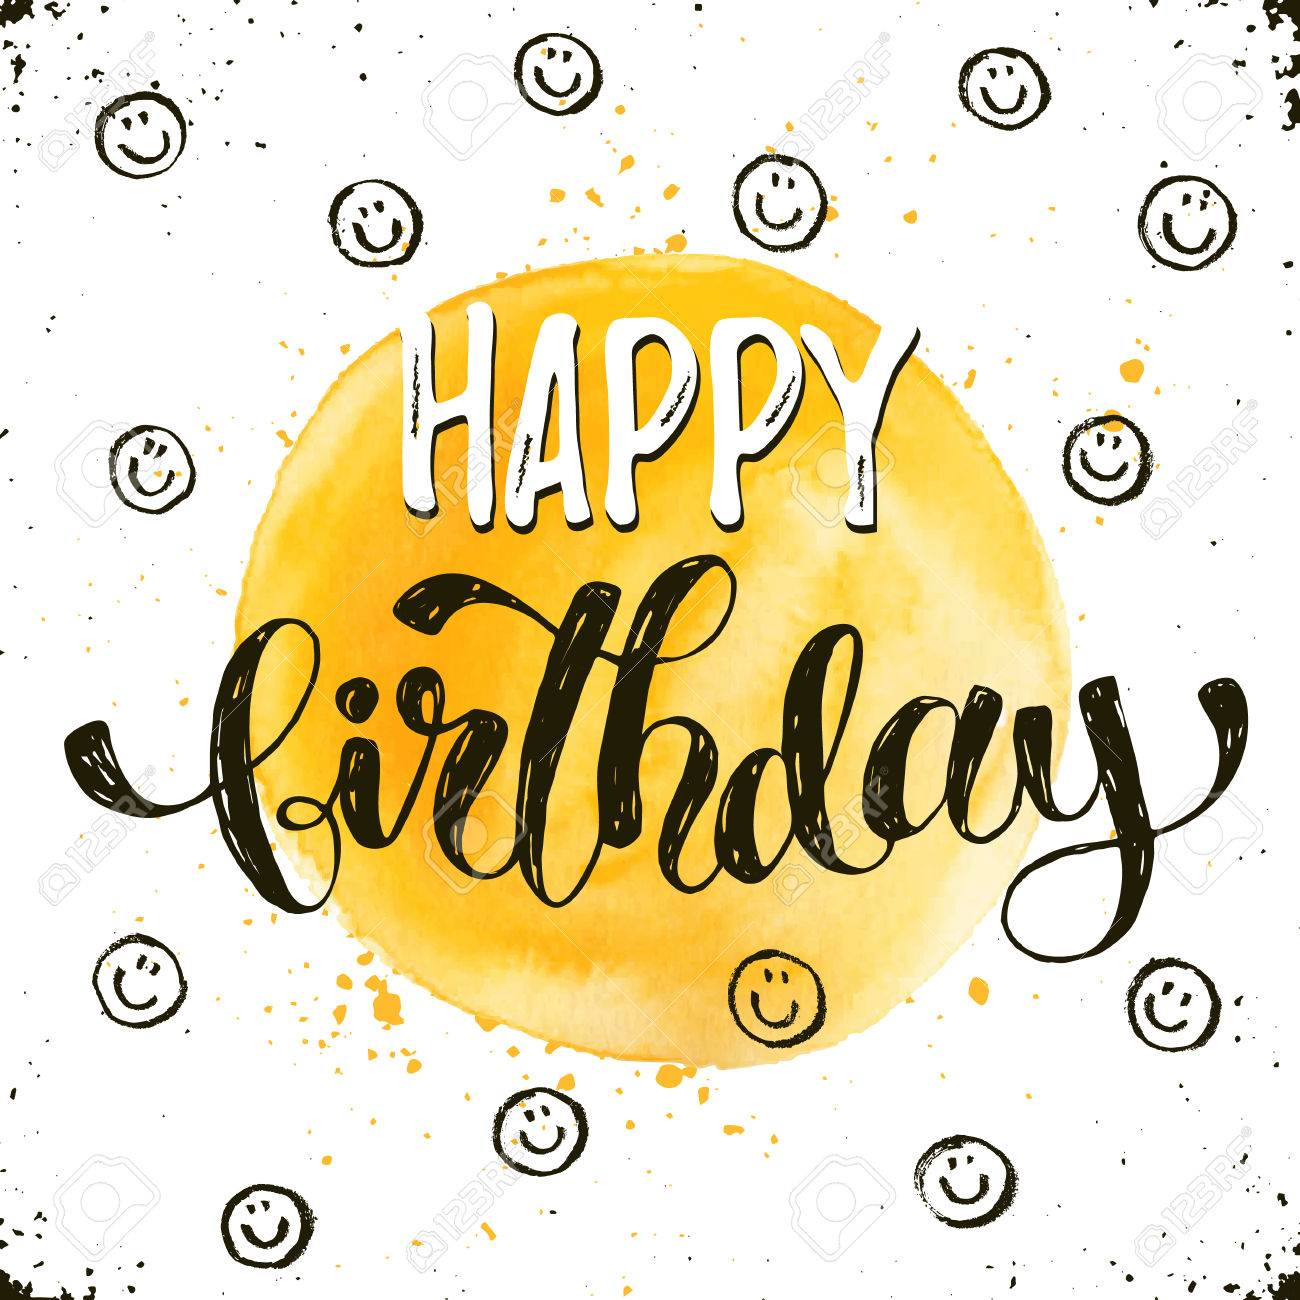 Happy birthday text hand drawn with dry brush bright and modern happy birthday text hand drawn with dry brush bright and modern ink lettering for greeting kristyandbryce Images